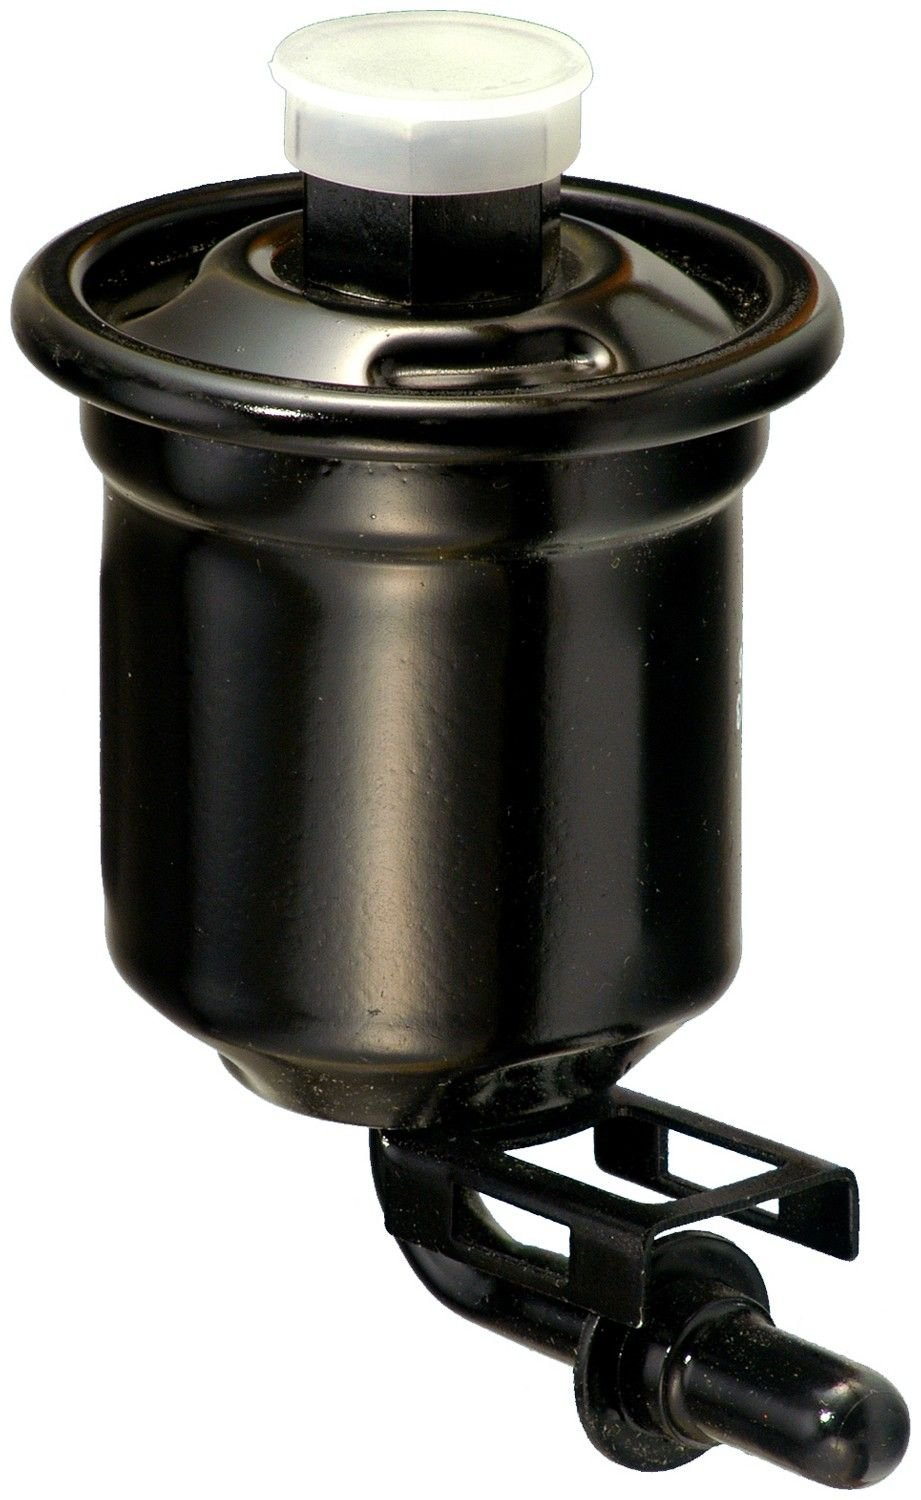 1998 Toyota Camry Fuel Filter 6 Cyl 3.0L (Fram G8207) In-Line Fuel Filter .